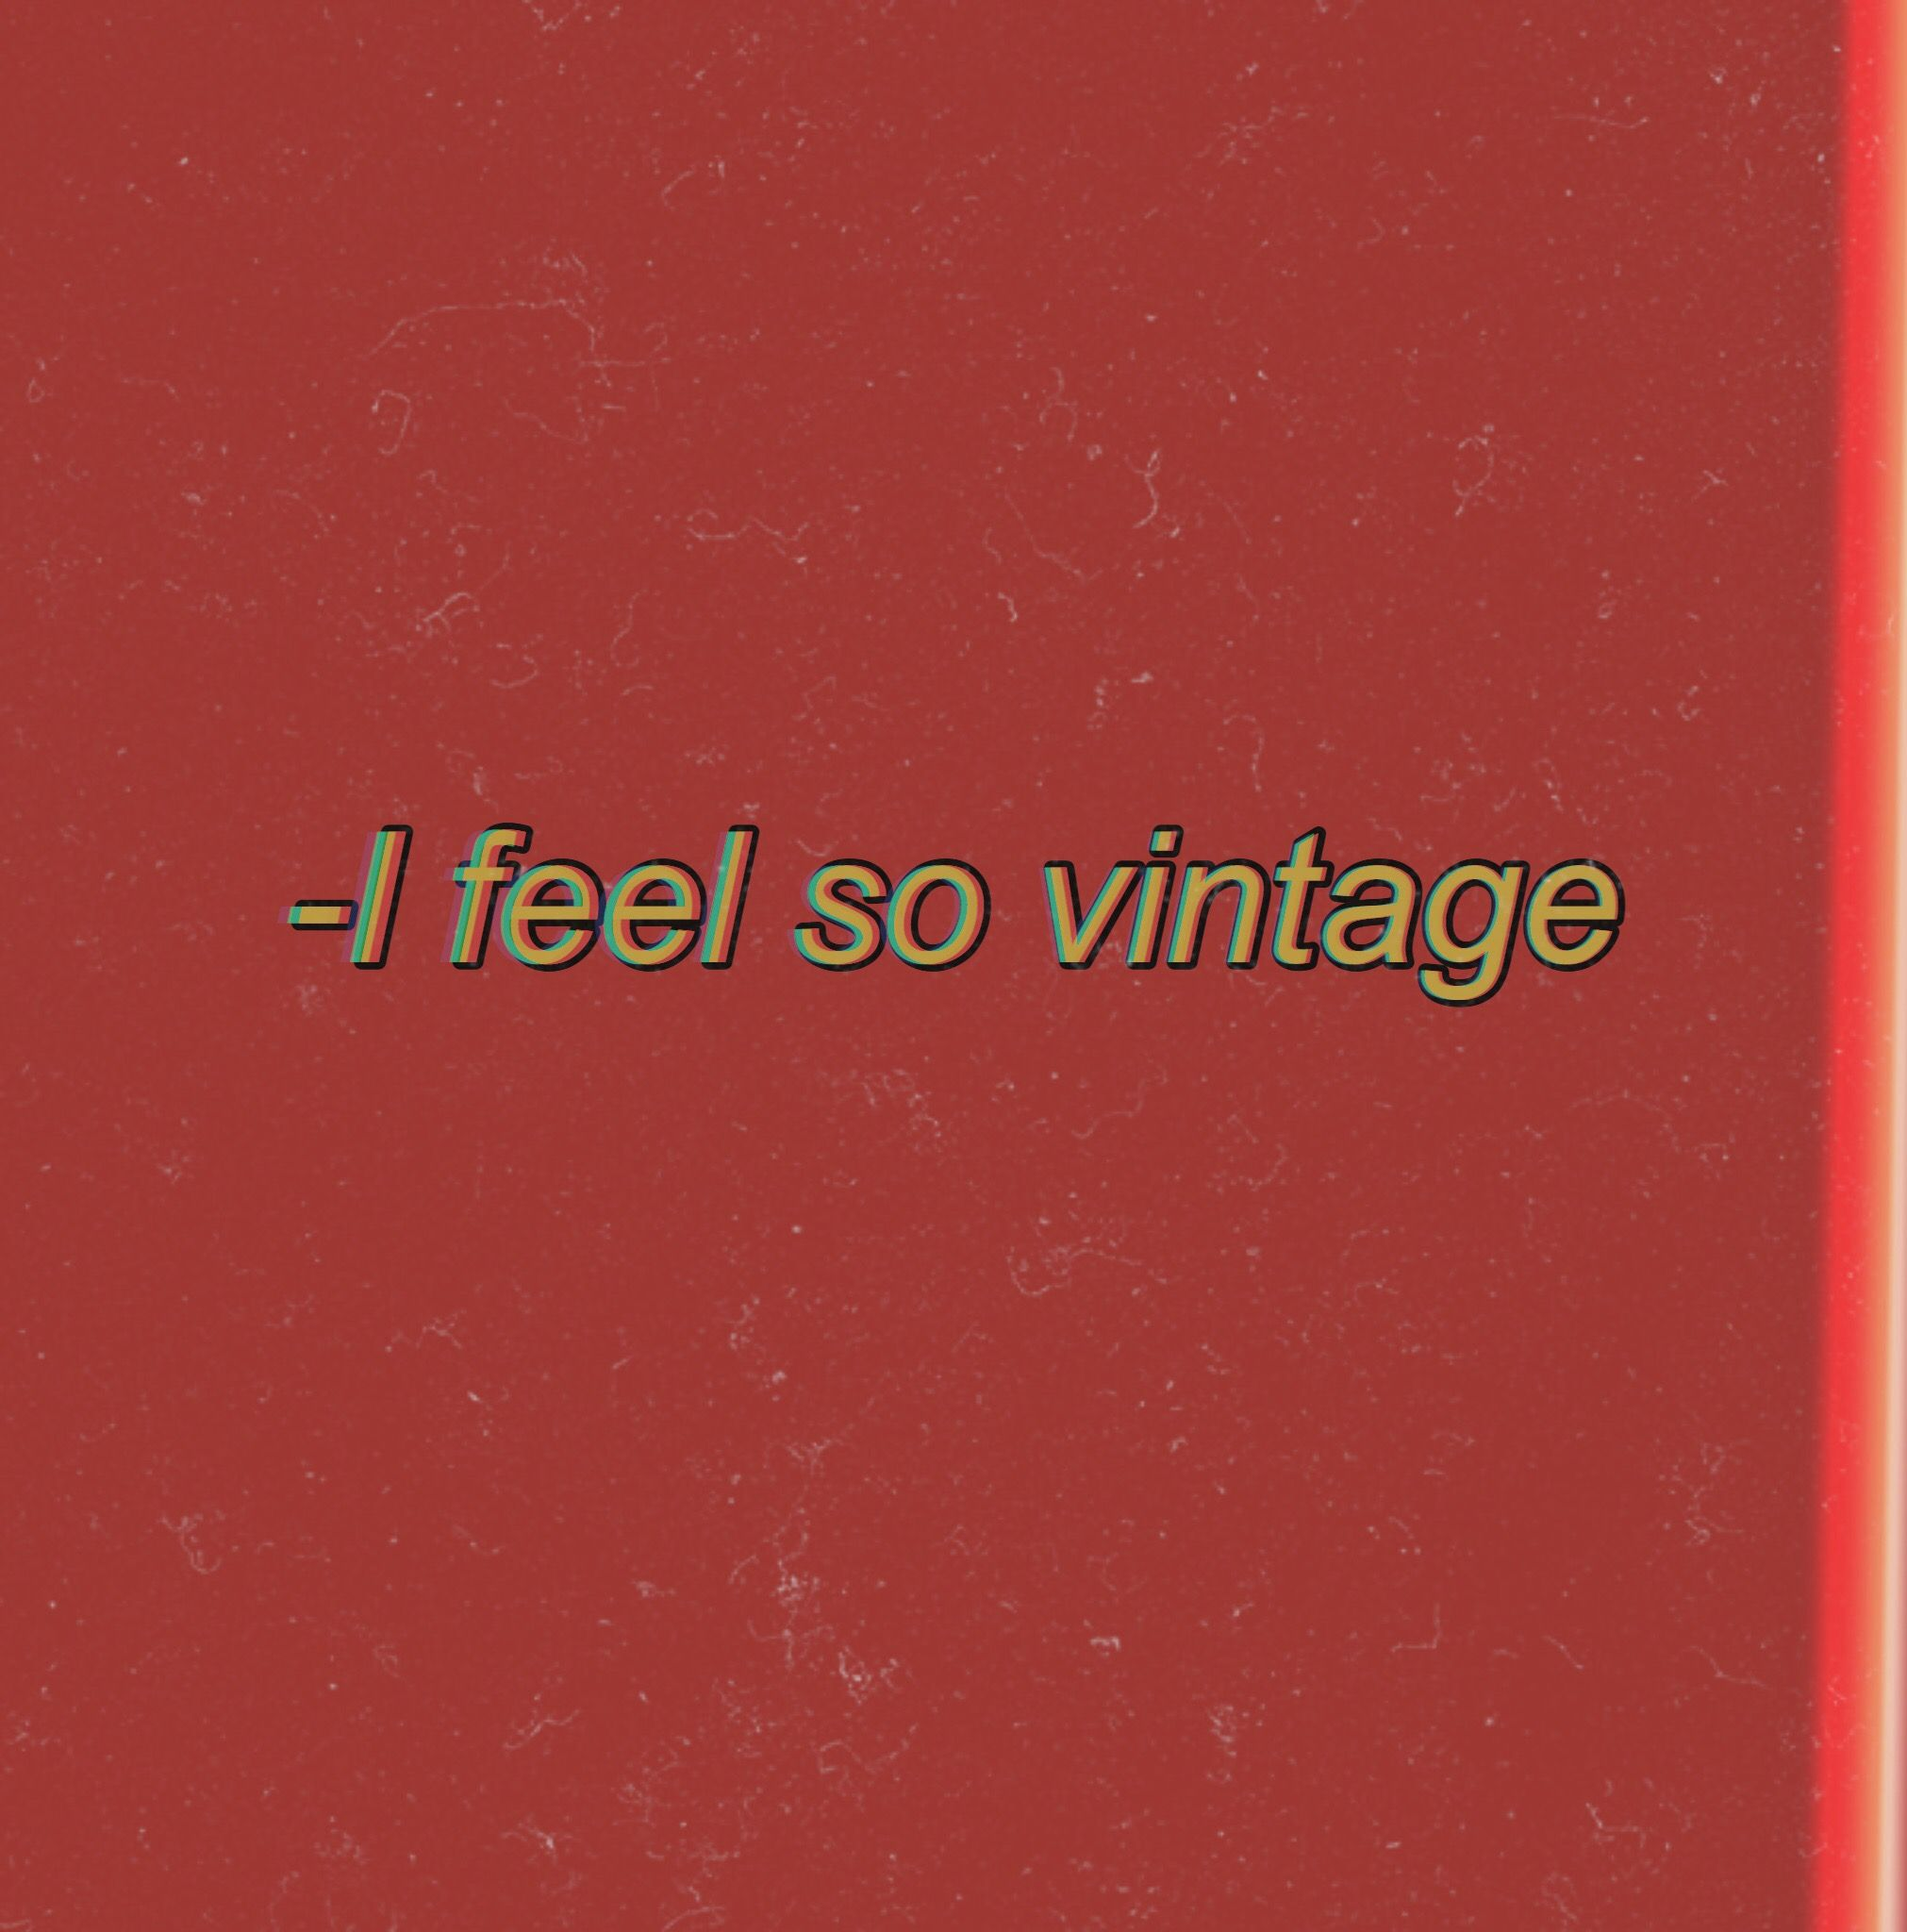 Pin By Riss On Aesthetic Red Aesthetic Aesthetic Vintage